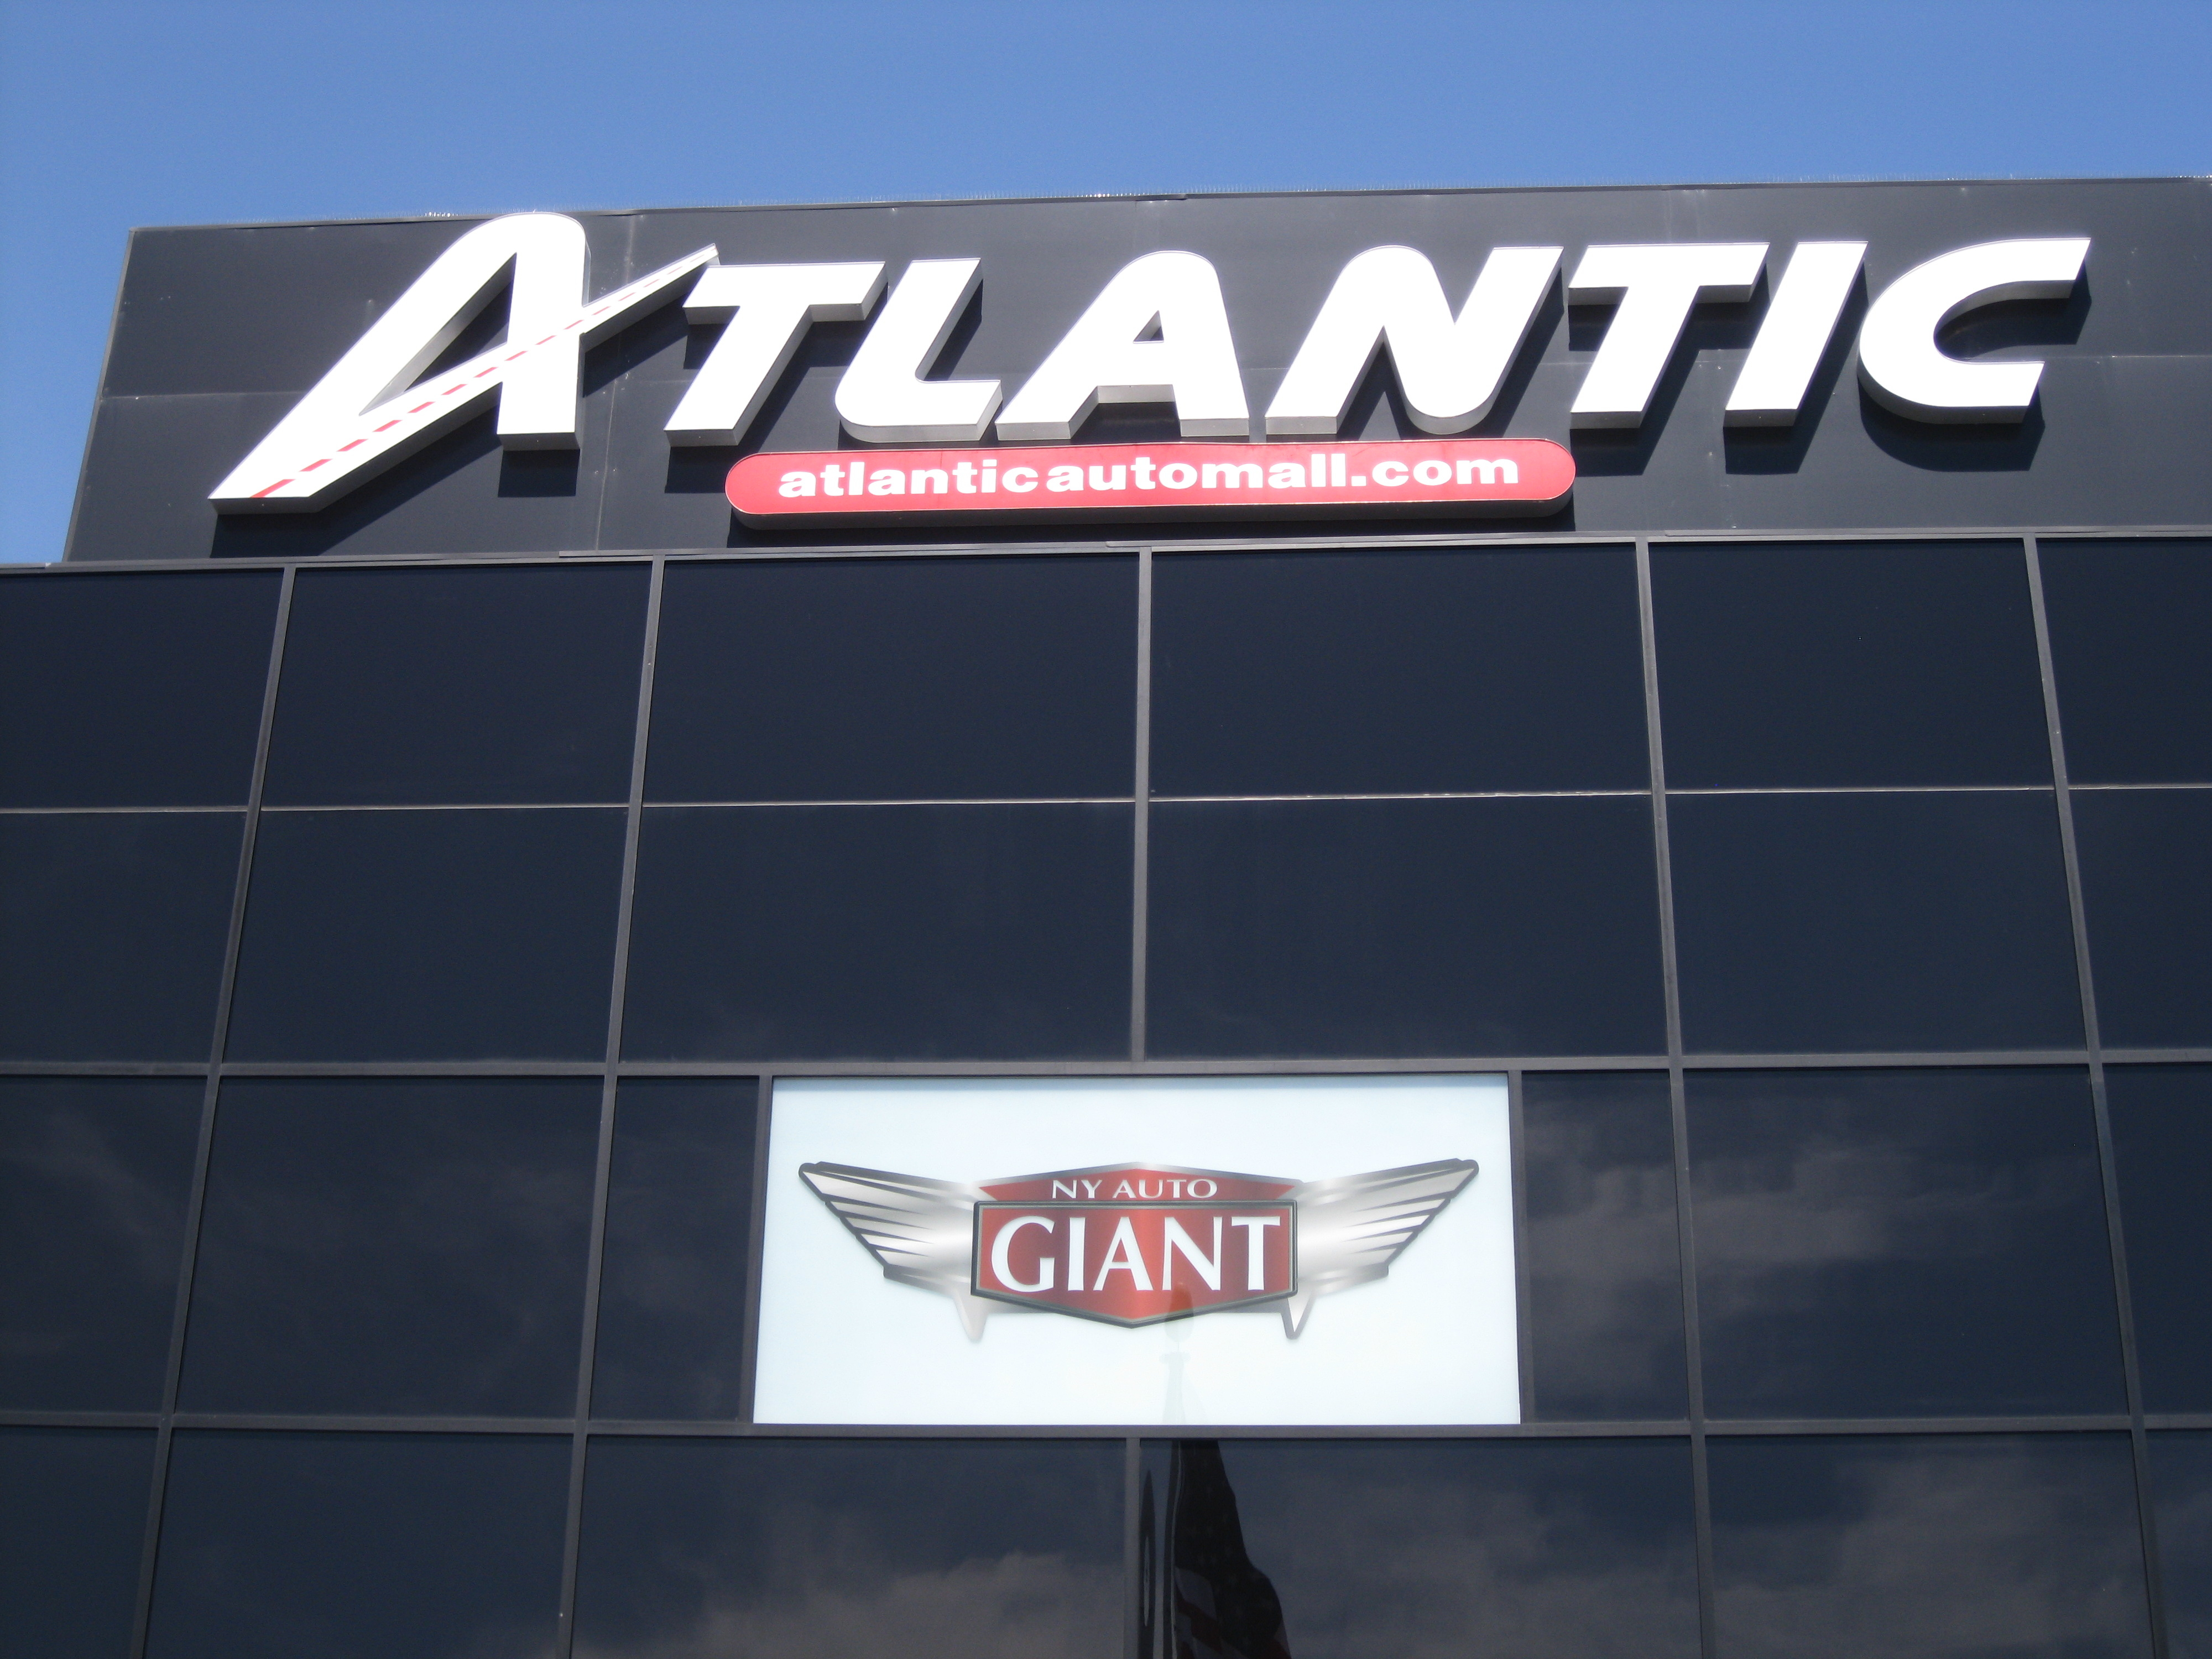 Superior Atlantic Nissan 1521 Sunrise Highway Bay Shore, NY Car Service   MapQuest